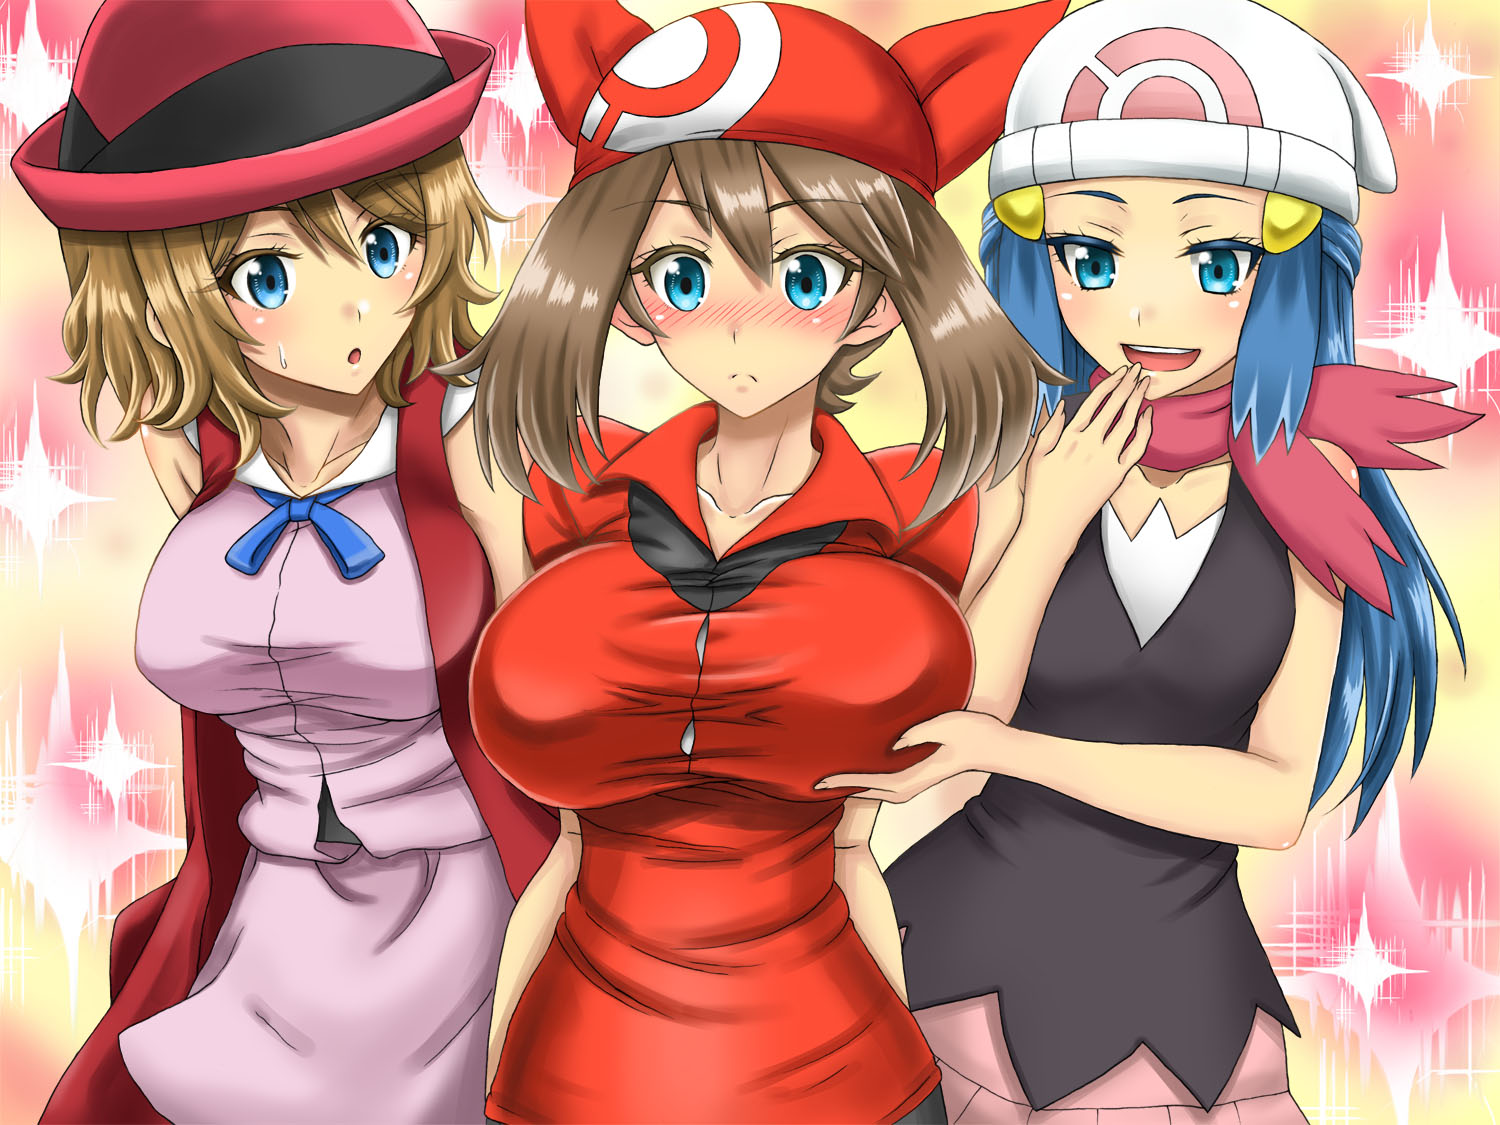 Pokemon girls big tits, sexy chick background